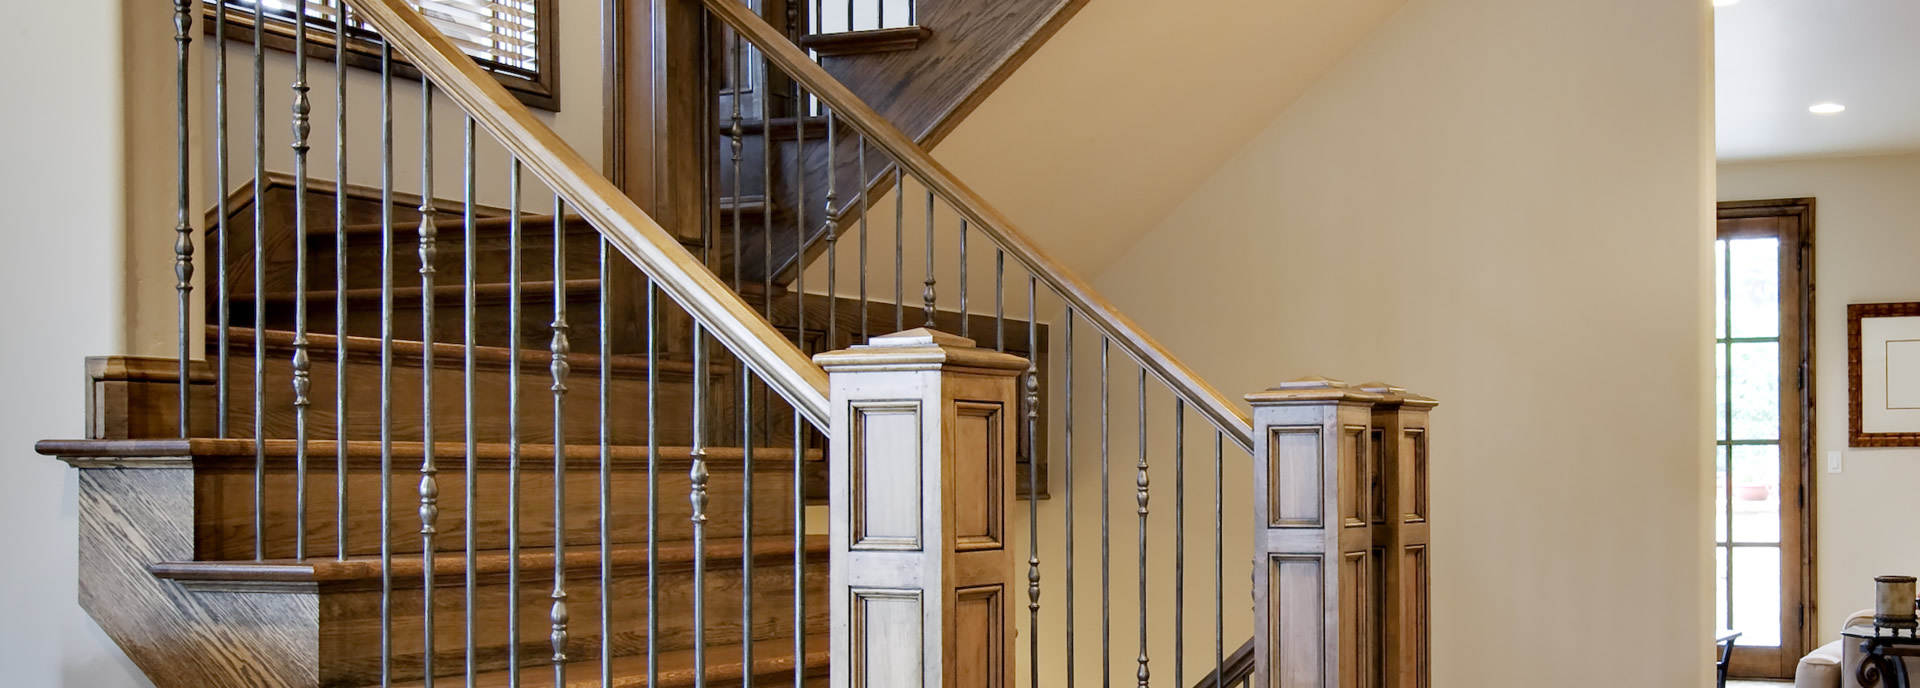 Wrought Iron Stair Railings: An Upgrade from Traditional Metal Alpharetta, GA